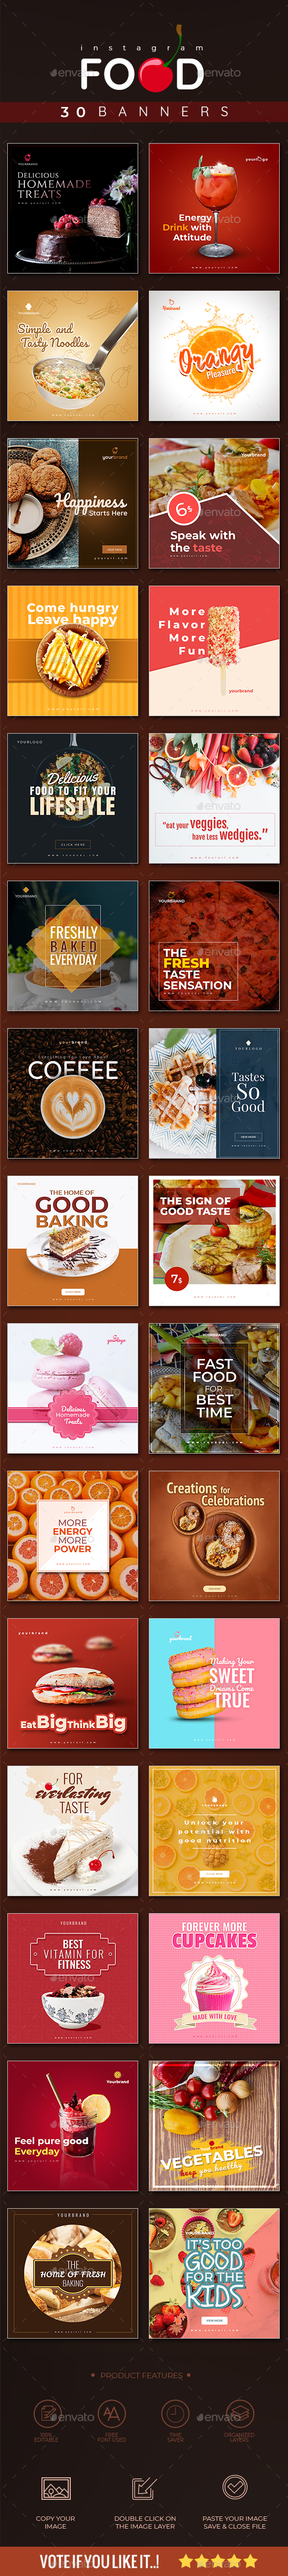 30 Food Instagram Banners - Social Media Web Elements